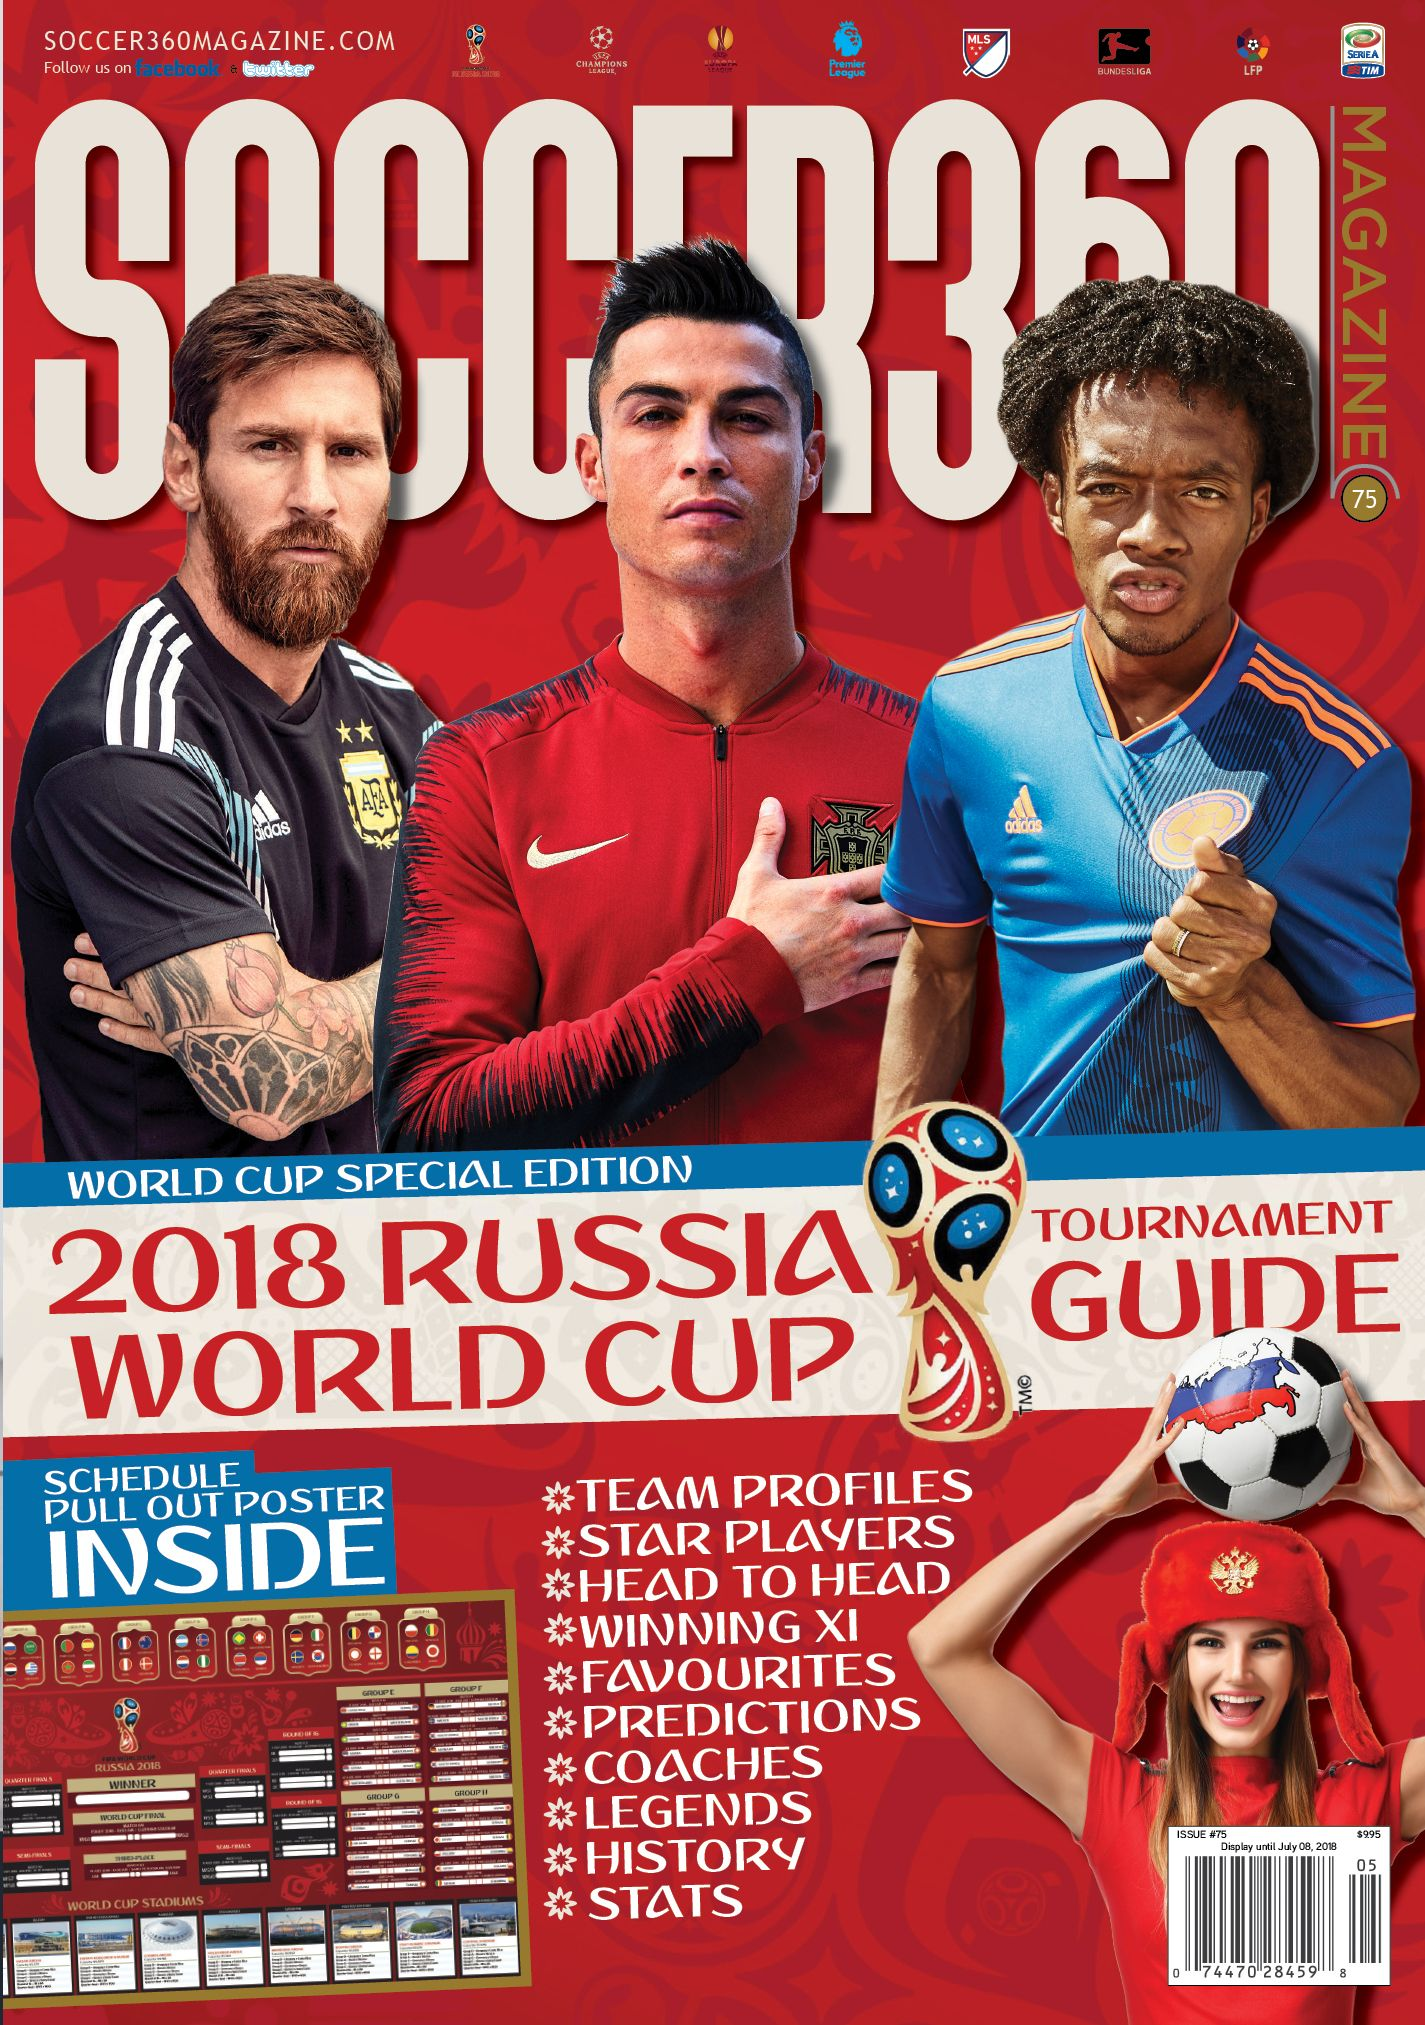 0c343d913 Soccer 360 Magazine World Cup Russia 2018 Special Edition The Complete  Guide to the World Cup Featuring a 28